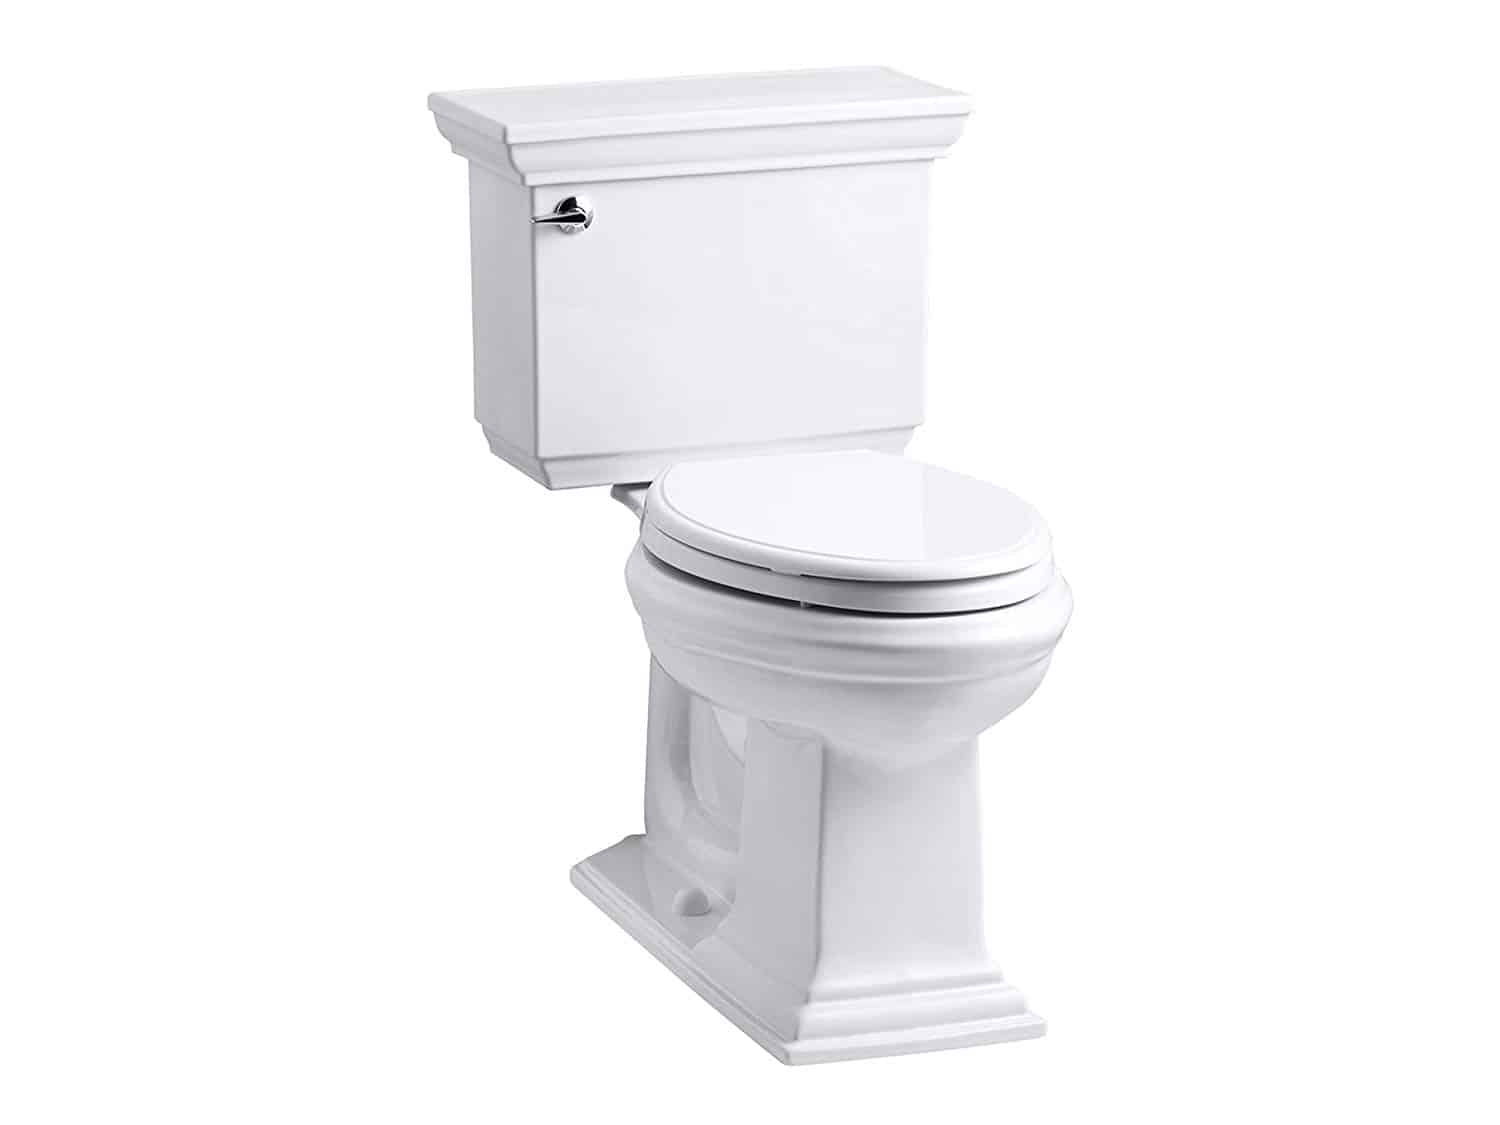 10 Best Toilets In 2020 Reviews And